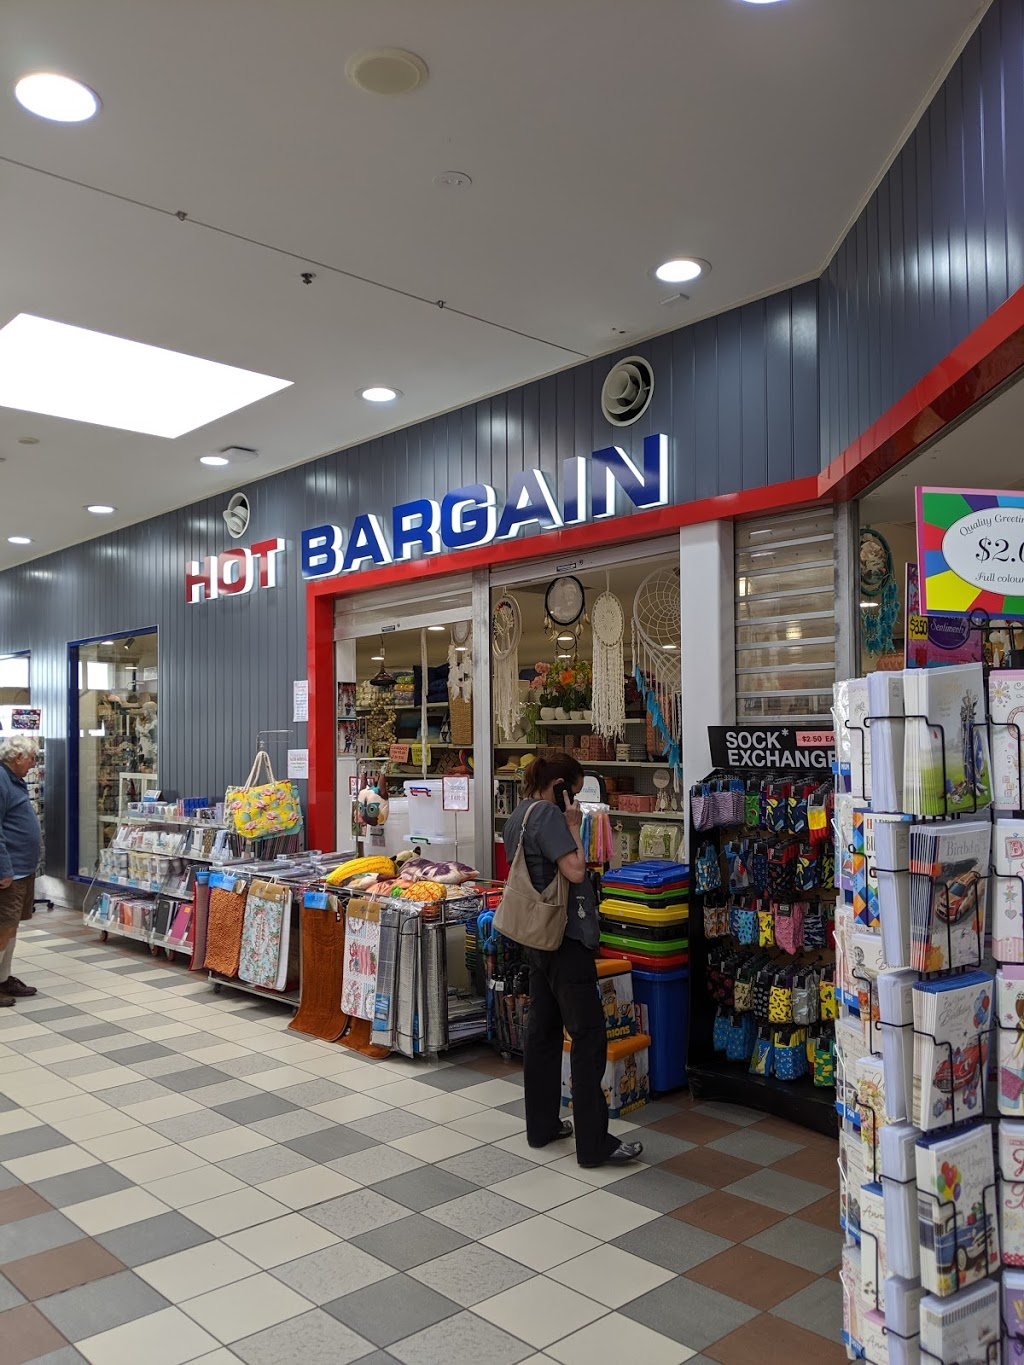 Hot Bargain | store | Shop 17, Warners Bay Village, Warners Bay NSW 2282, Australia